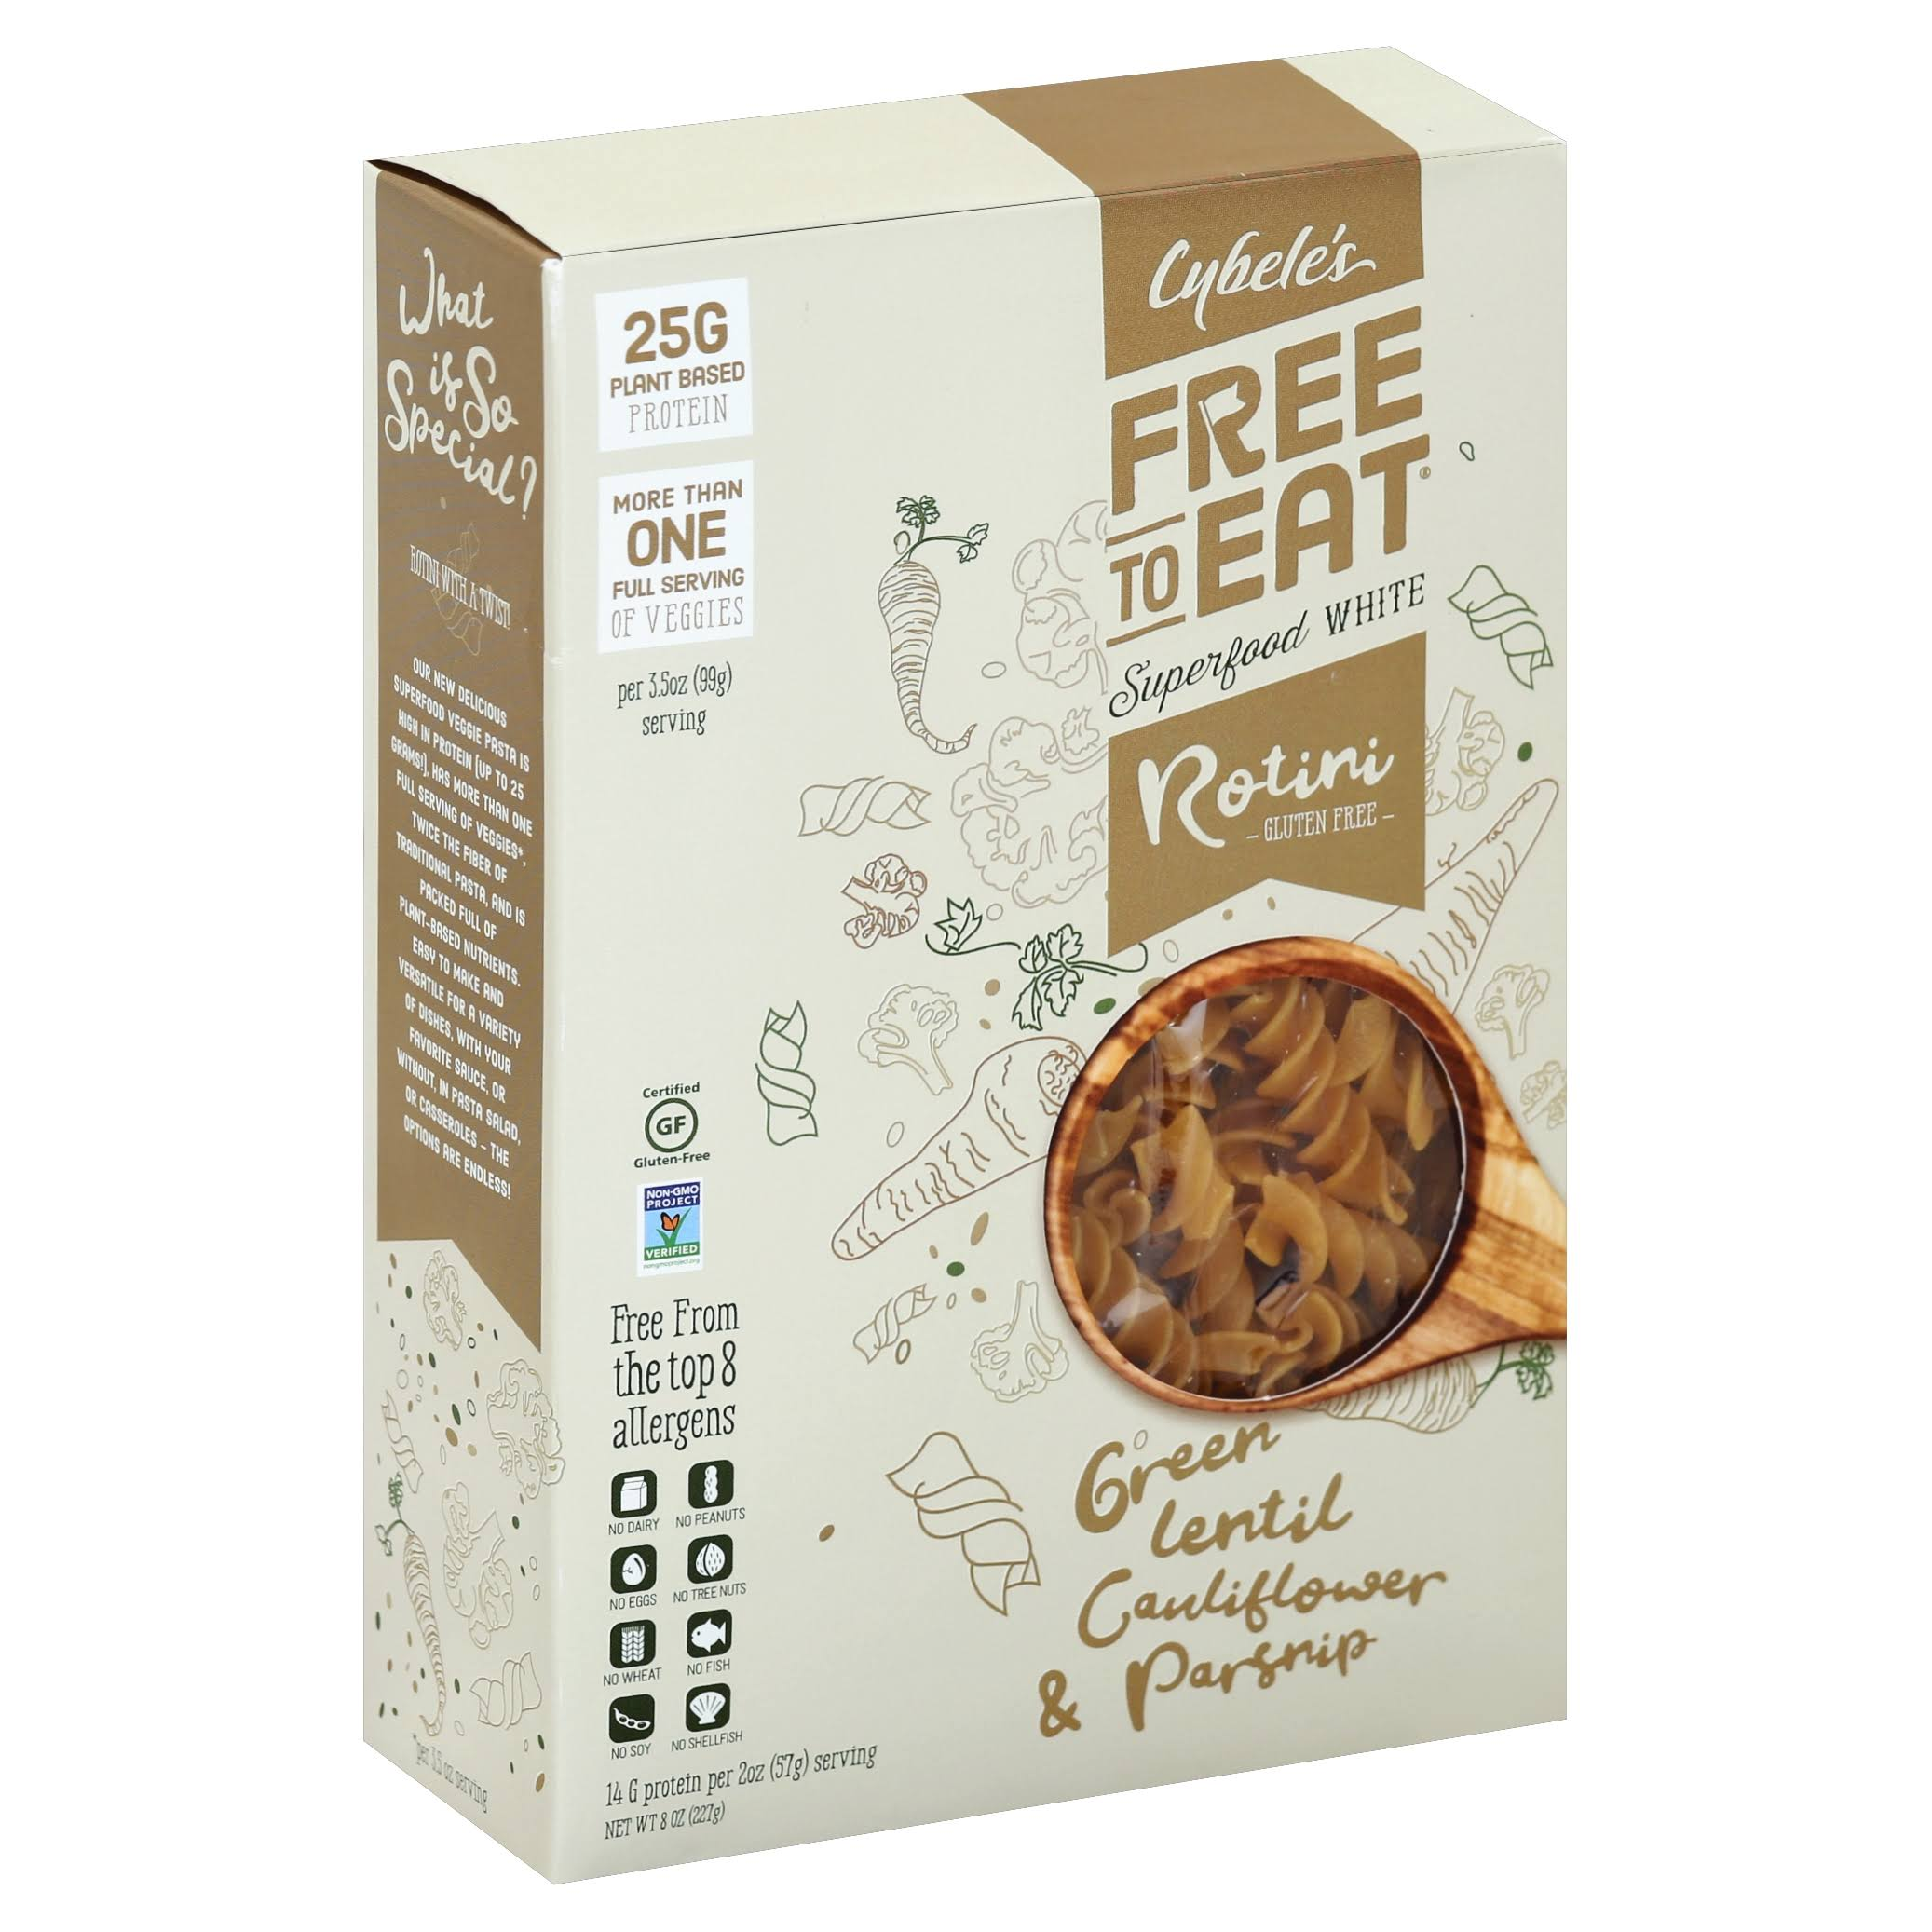 Cybele's Free-to-Eat Superfood White Veggie Pasta - 228g, Green Lentil Cauliflower & Parnsip